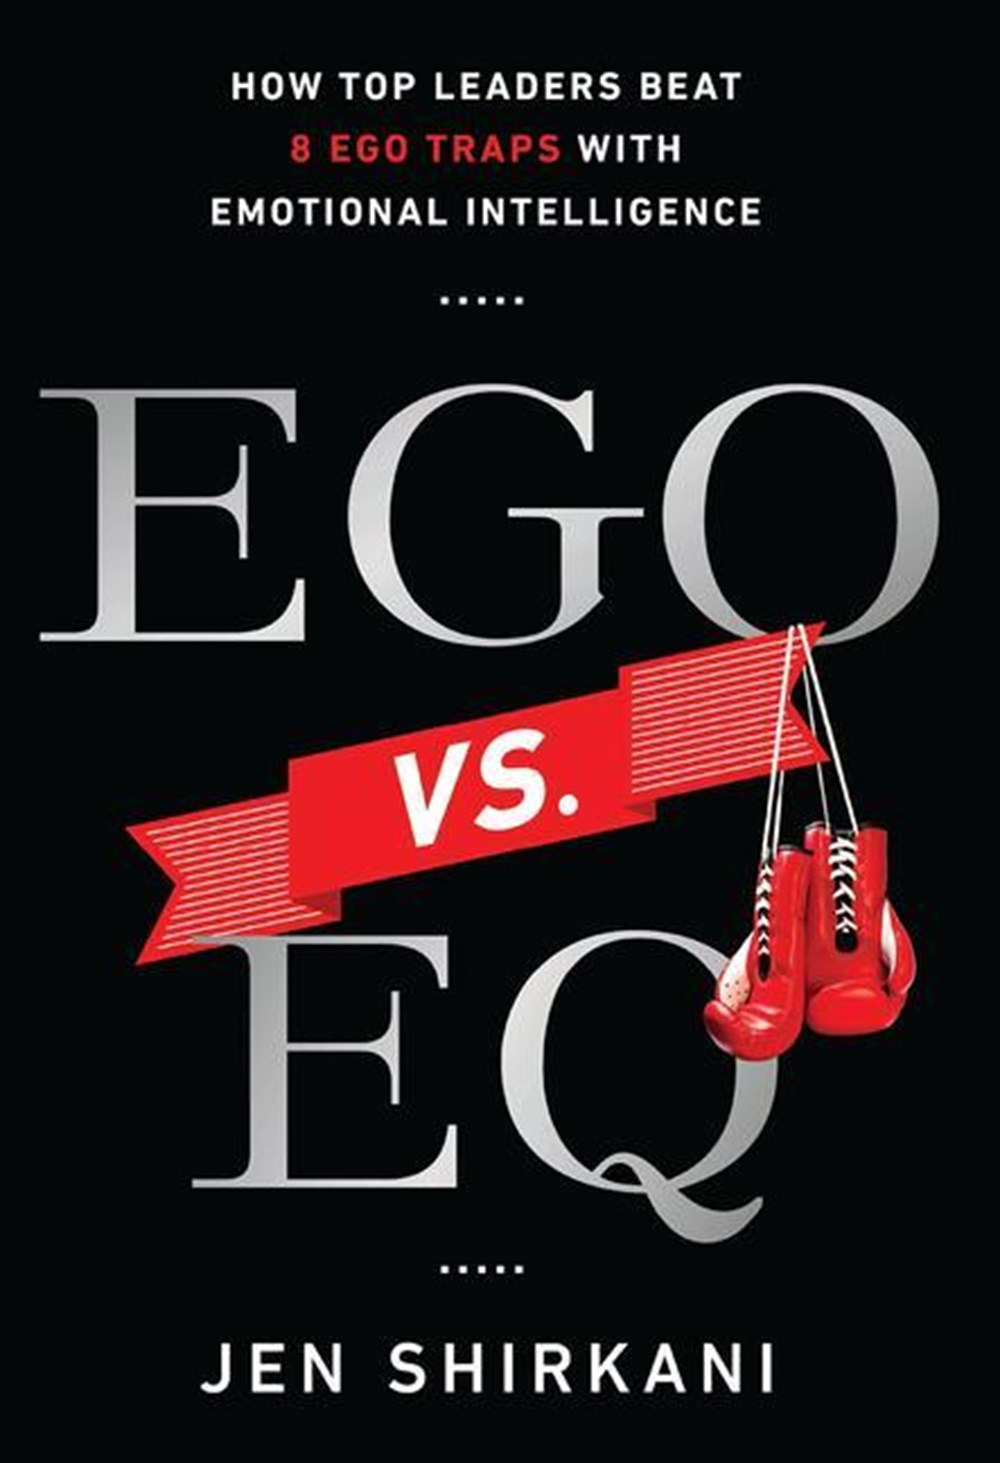 Ego vs. Eq How Top Leaders Beat 8 Ego Traps with Emotional Intelligence